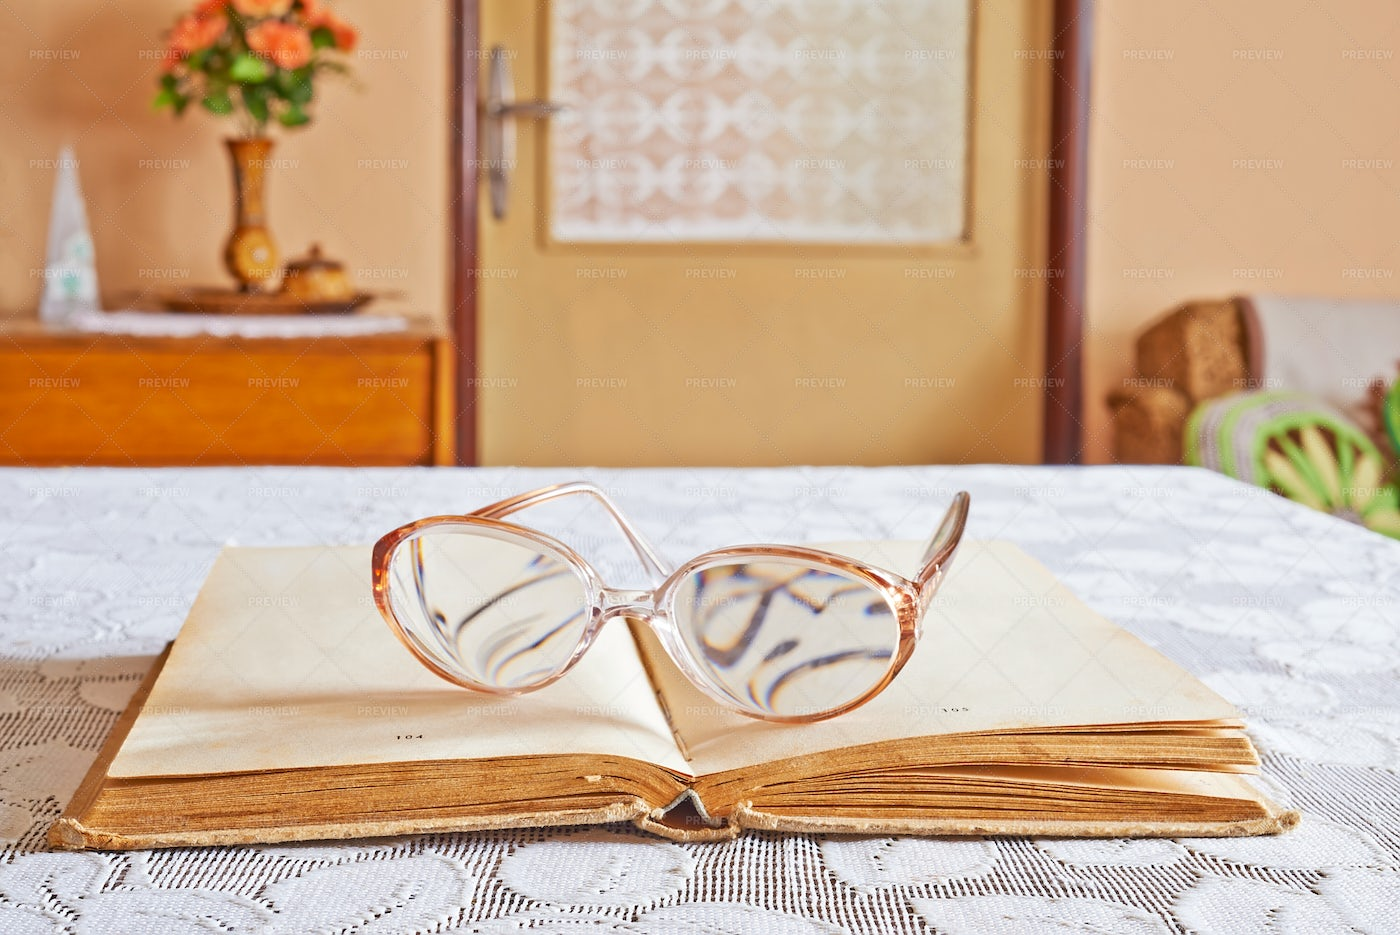 Books With Glasses: Stock Photos